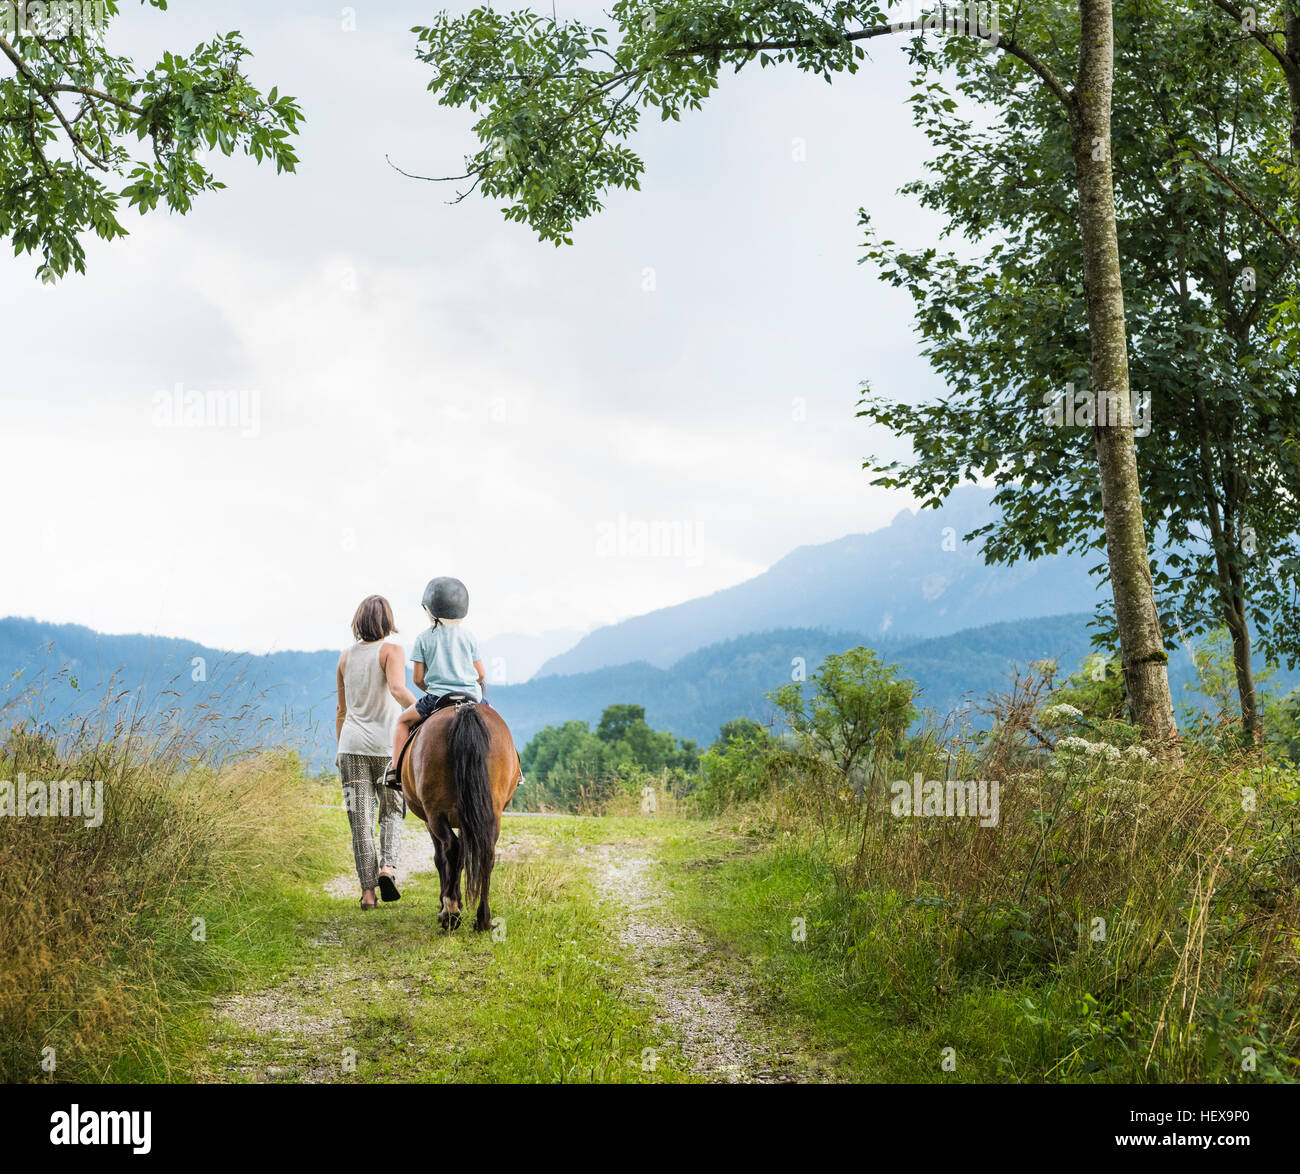 Rear view of mother guiding son riding horse, Fuessen, Bavaria, Germany - Stock Image